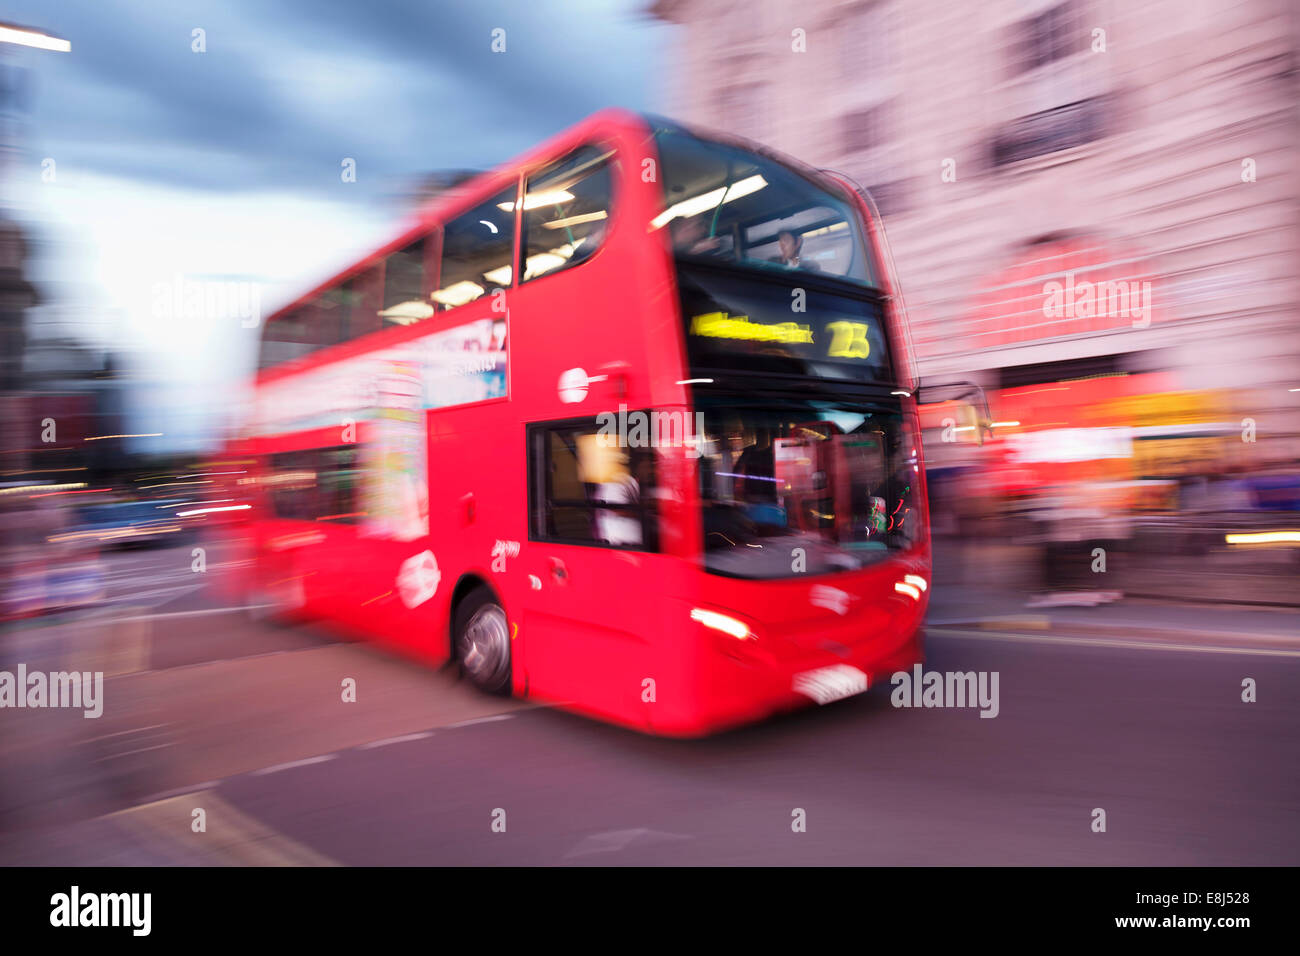 Bus à impériale rouge, motion blur, Piccadilly Circus, Londres, Angleterre, Royaume-Uni Photo Stock